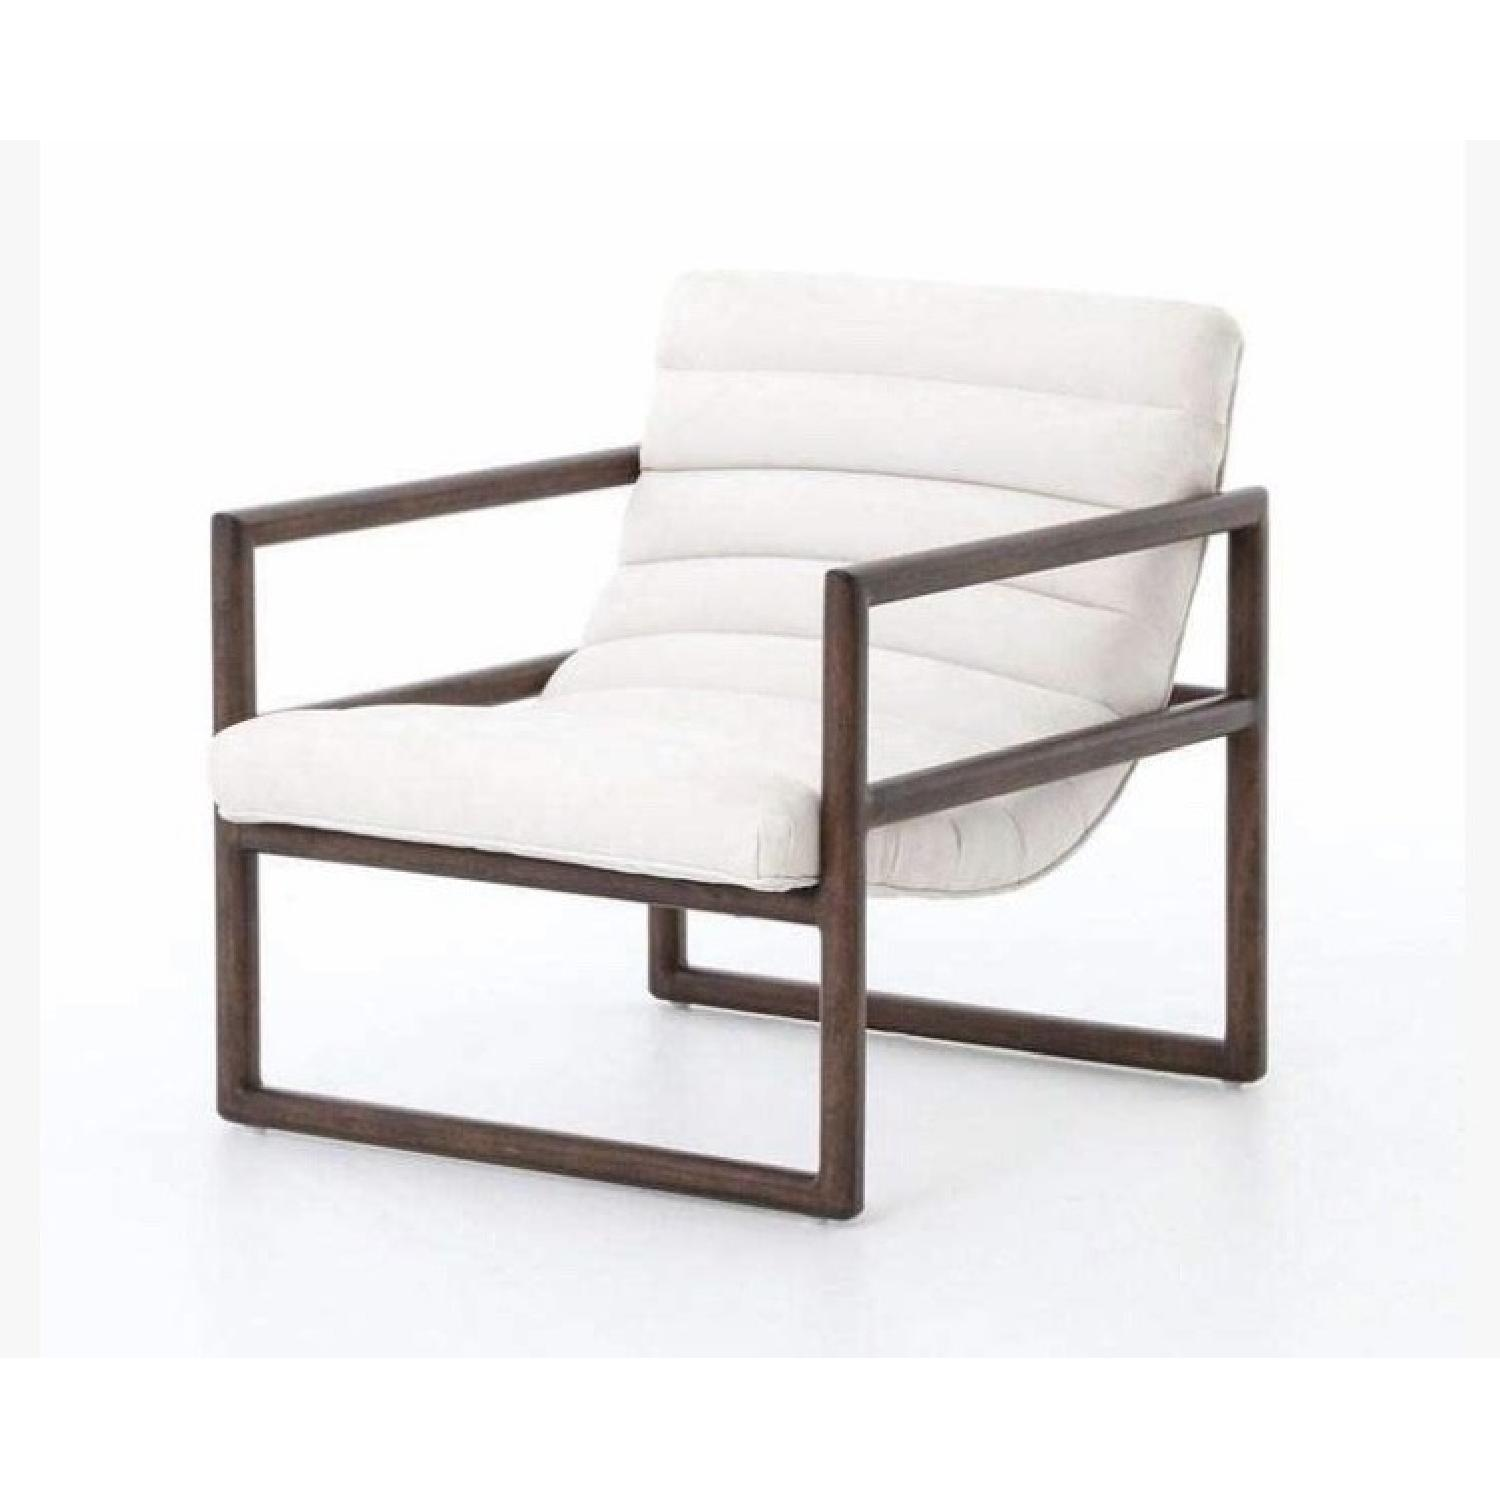 France & Son Fitz Chairs - image-2